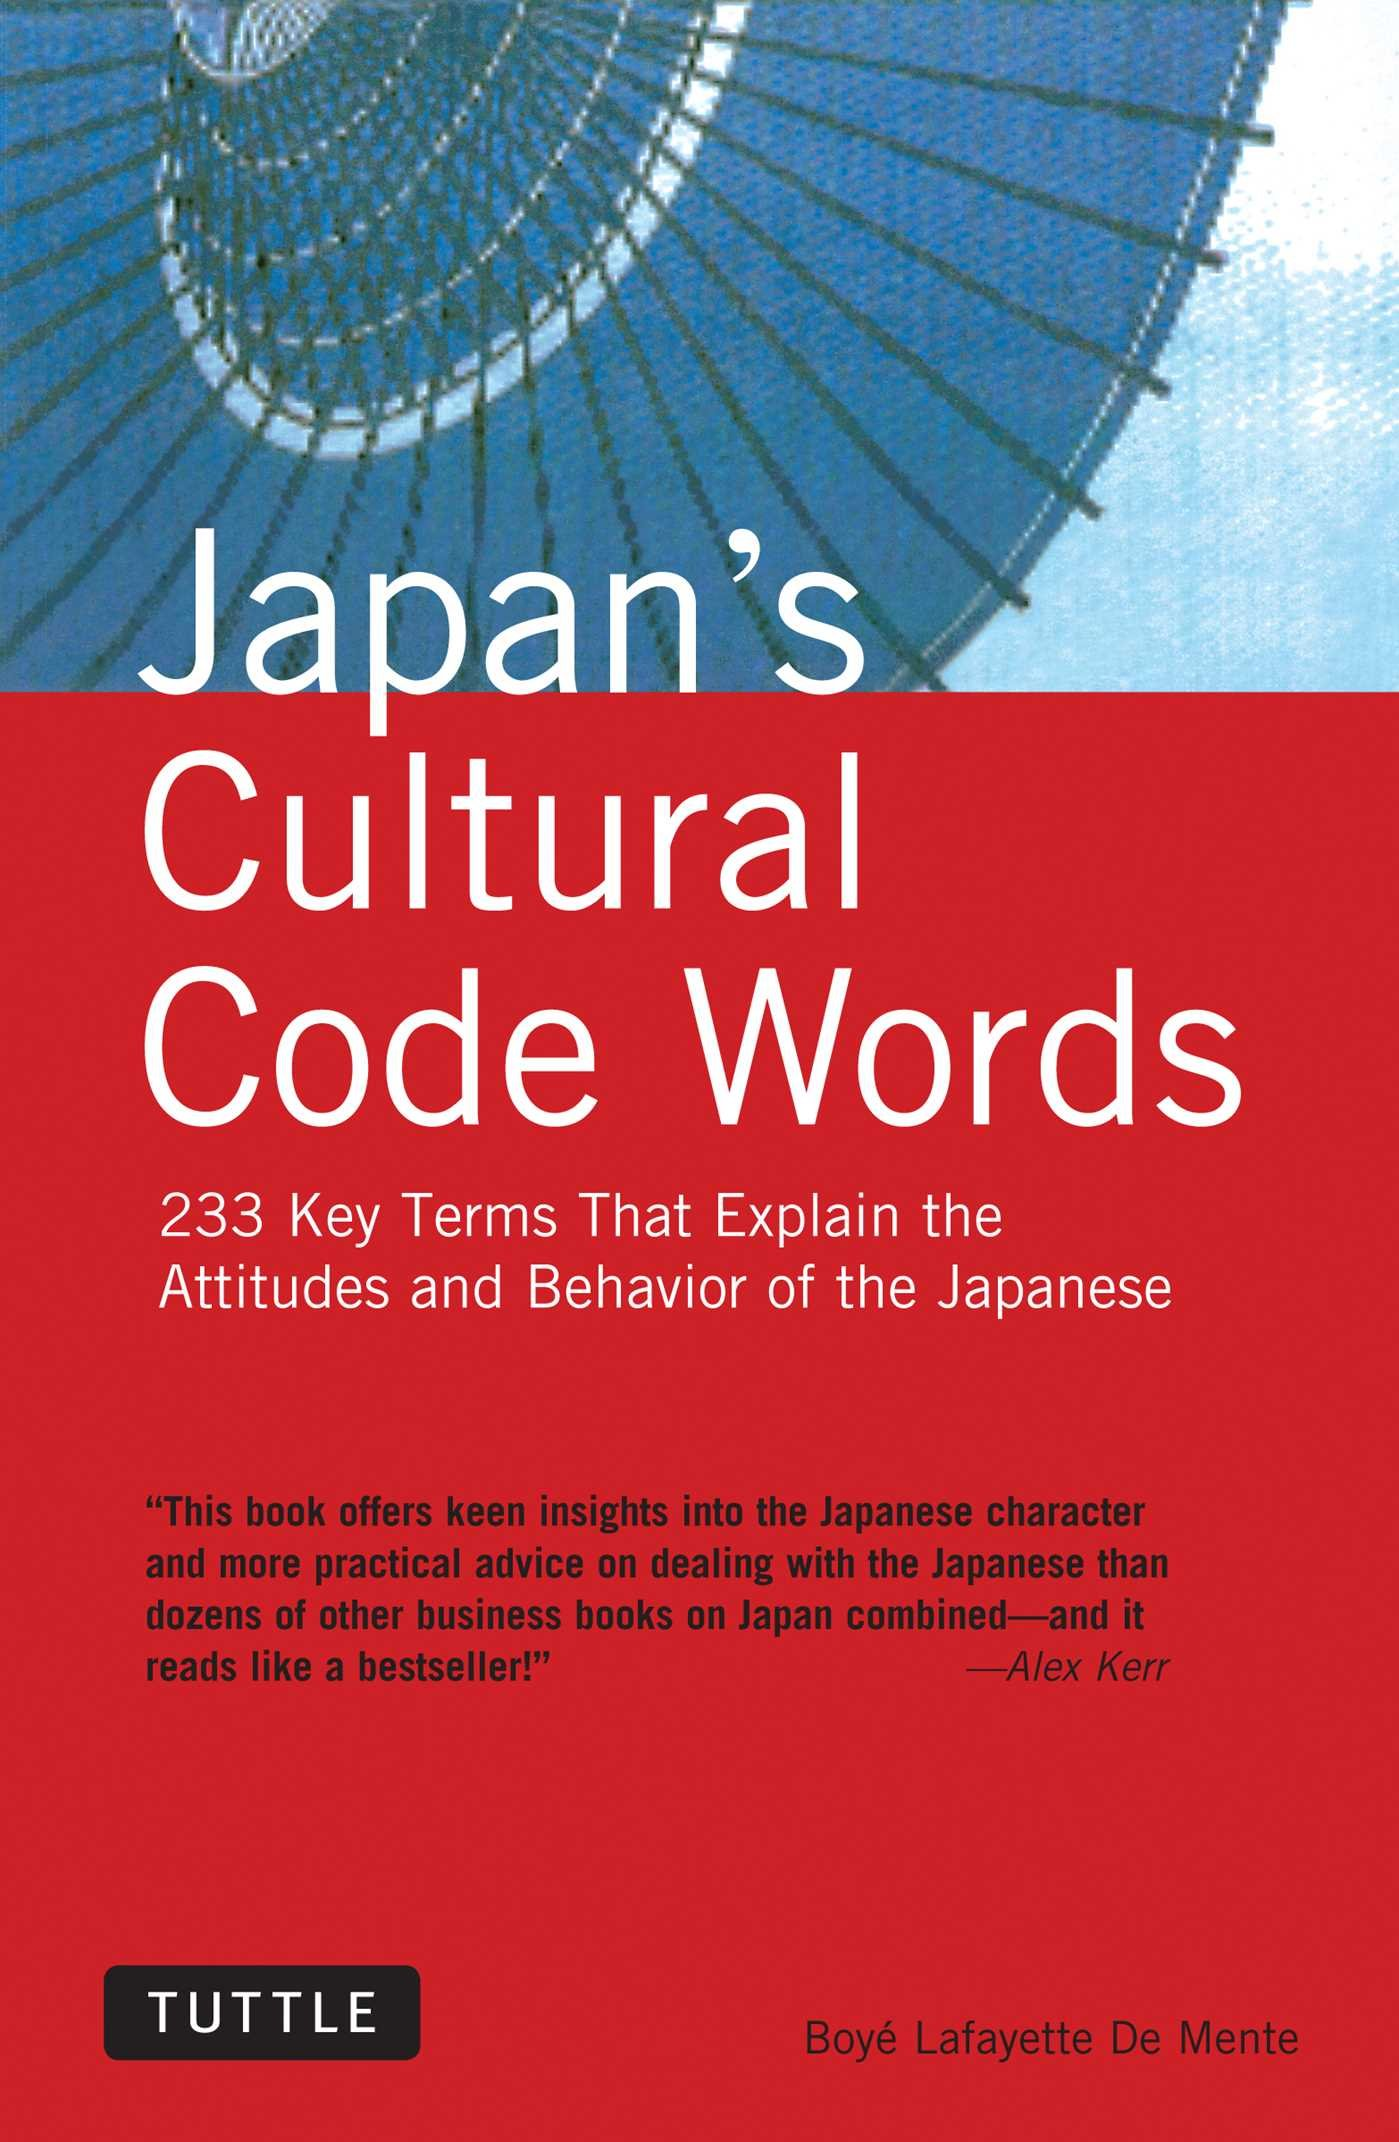 Japans cultural code words 233 key terms that explain the japans cultural code words 233 key terms that explain the attitudes and behavior of the japanese boye lafayette de mente 9780804835749 amazon fandeluxe Choice Image